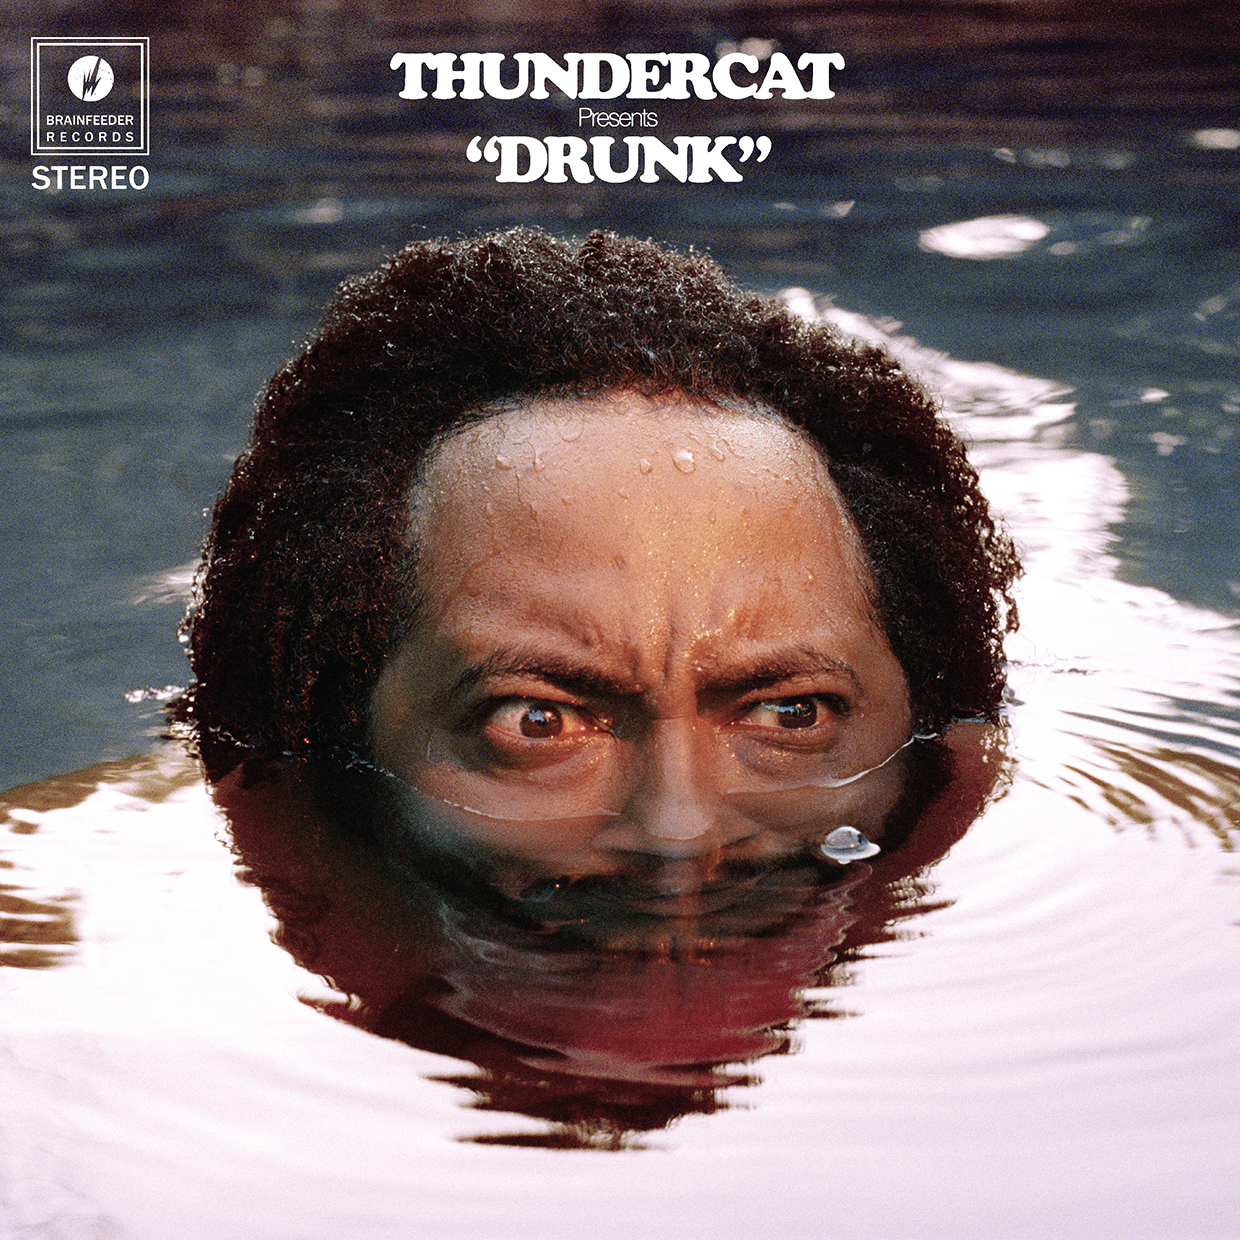 Thundercat brings out his geeky groove